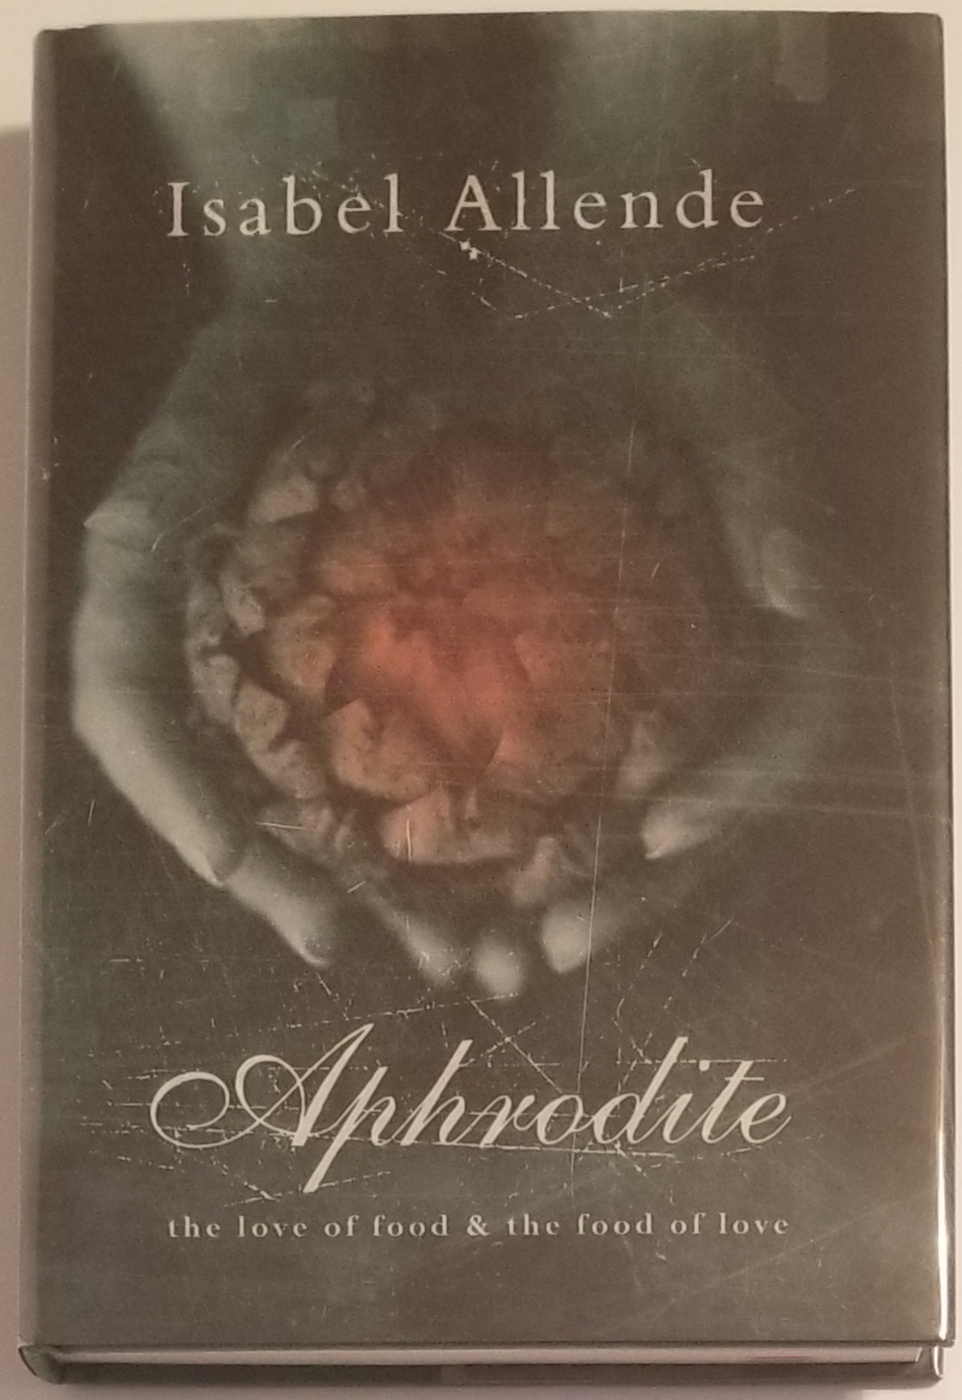 APHRODITE. A Memoir of the Senses. Illustrations by Robert Shekter. Recipes by Panchita Llona. Isabel Allende.